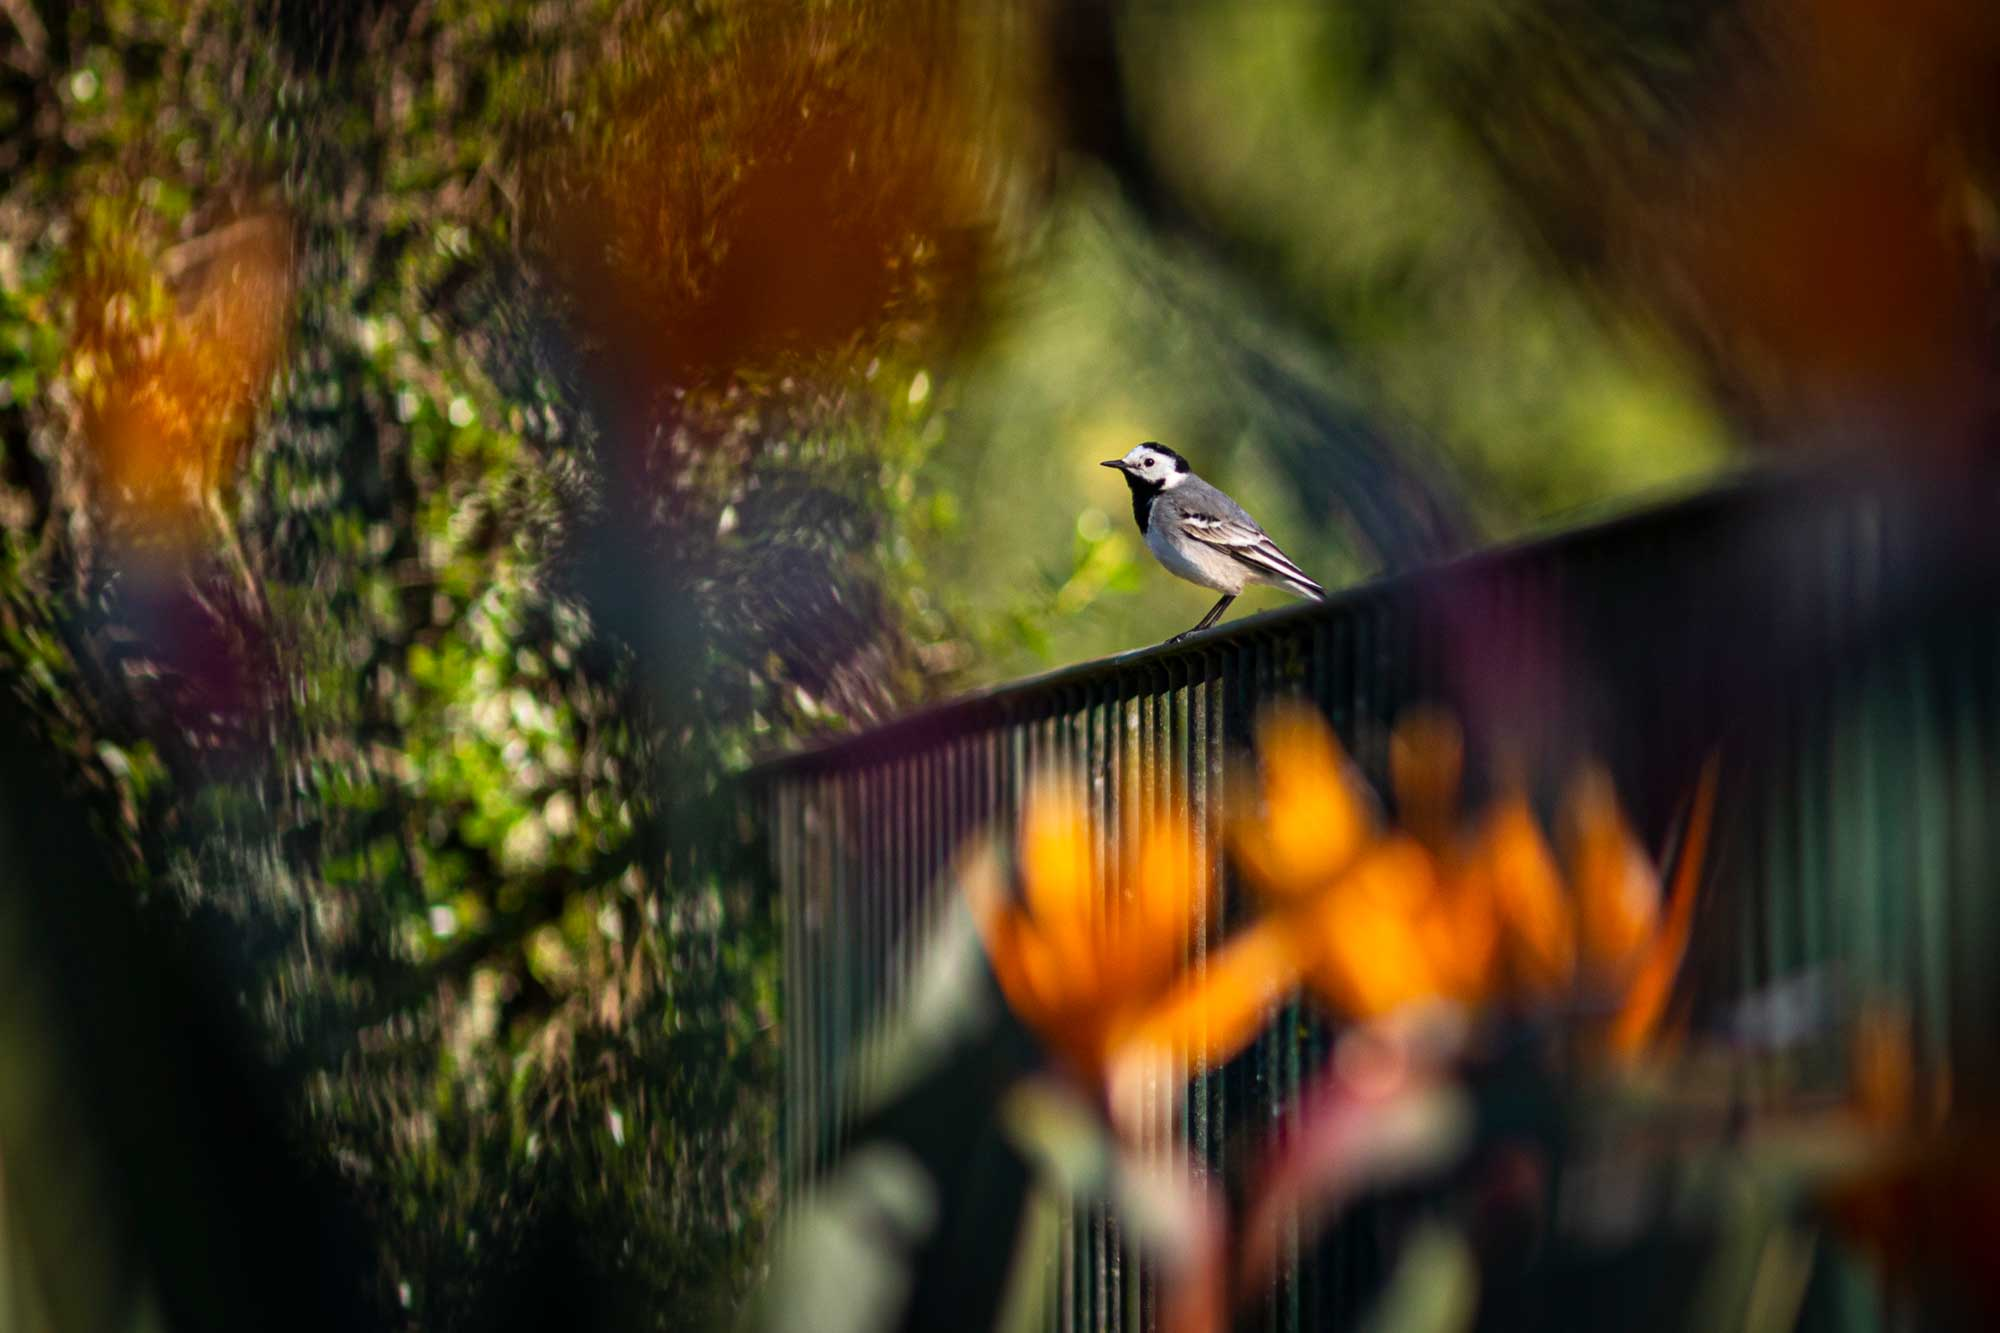 Bird in the garden